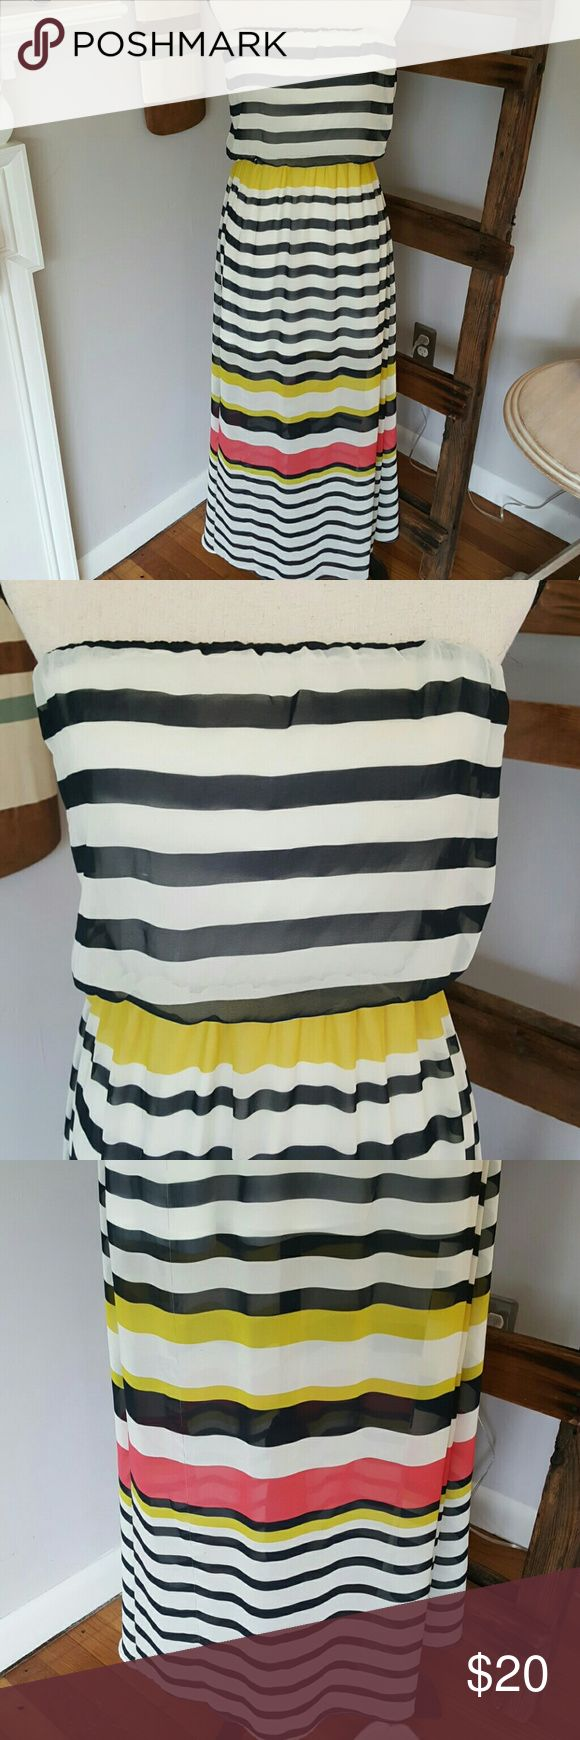 Perfect Summer Maxi dress Worn one time! It's just not for me but perfect for you.   This dress is white with navy stripes, accented with yellow and coral stripes on the wait and bottom. It's made of a light chiffon-y material and is lined inside (the skirt lining goes down to just above the knee, as is the style).  The waist and top are elastic so it won't slip down out of place. This dress is perfect for BBQs, derby parties, or even a casual wedding.   Buy before 12pm EST and I'll ship…